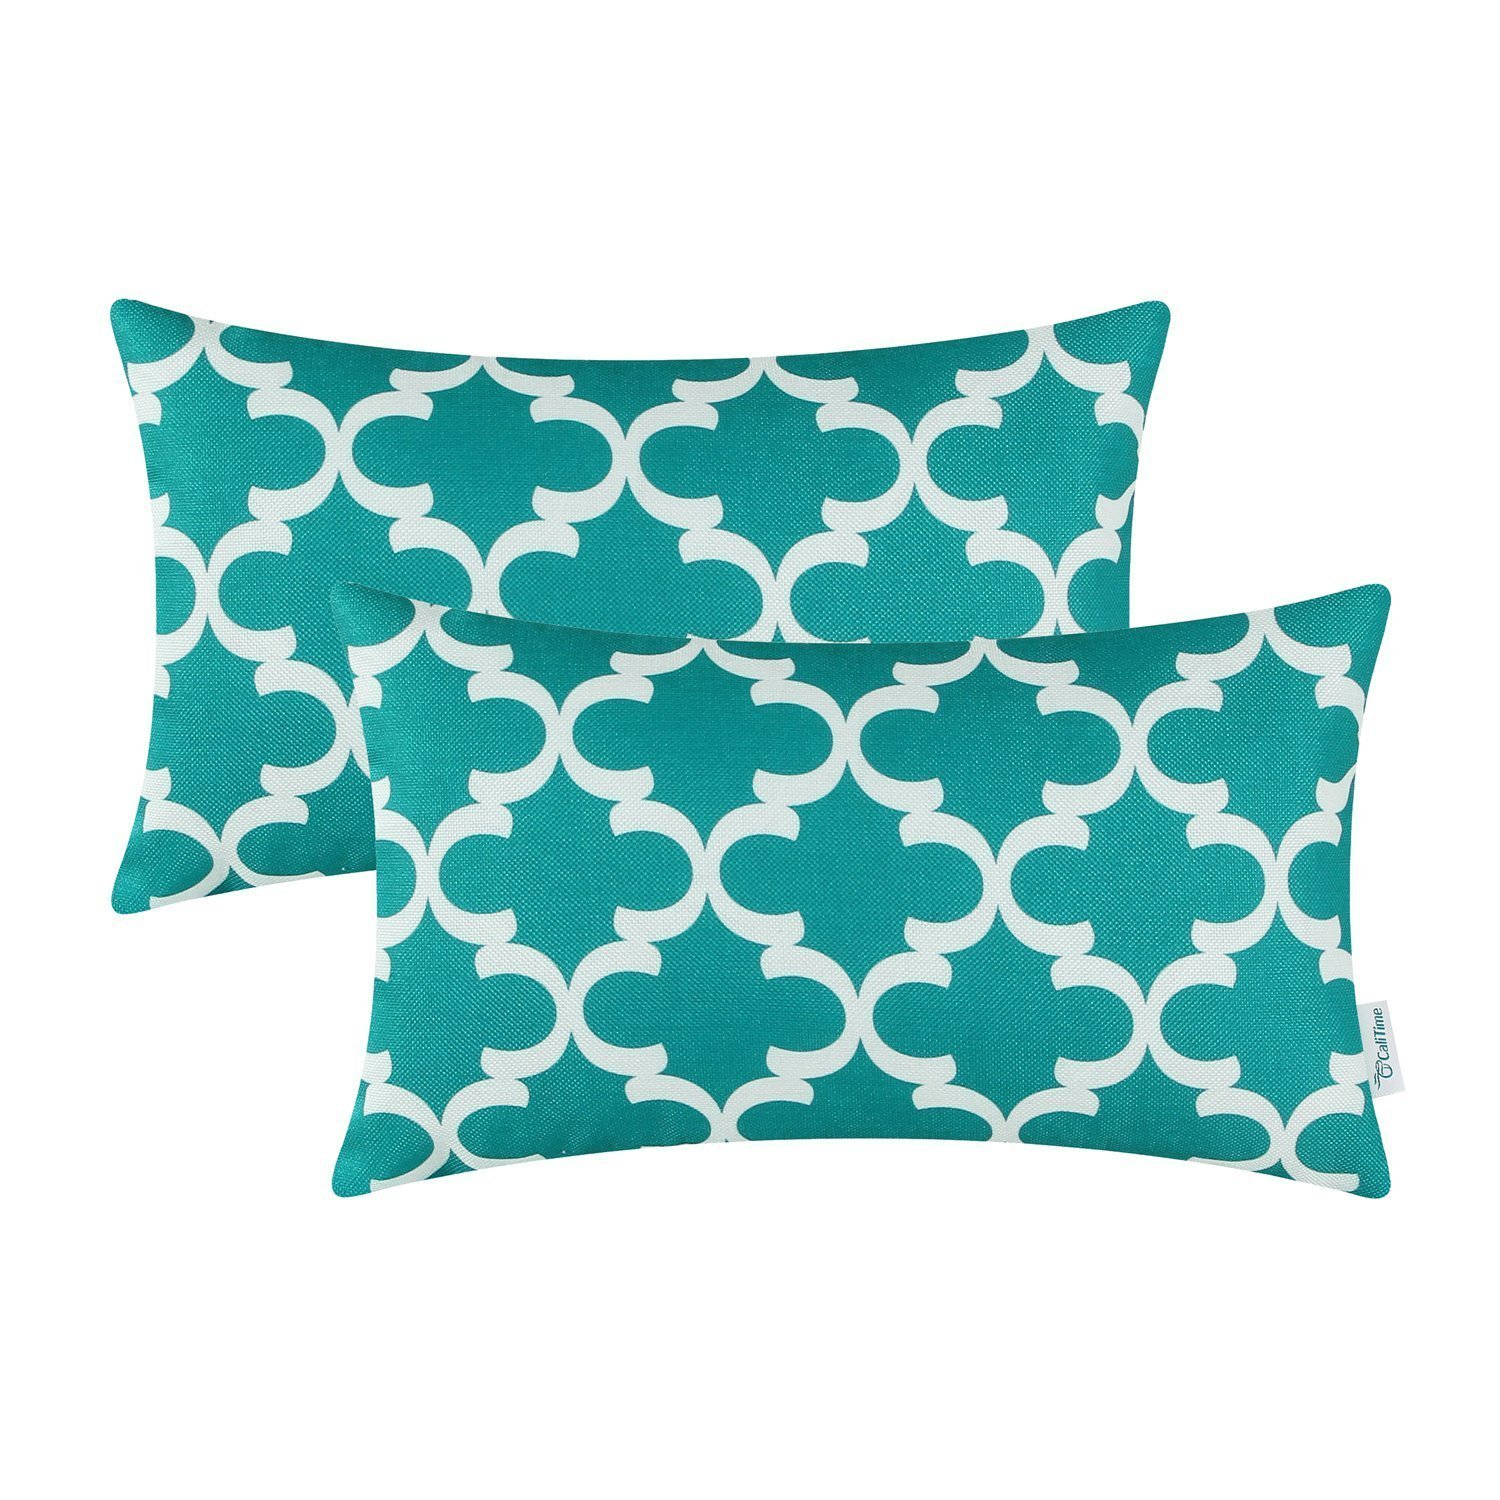 Decorative Pillow Guide : Decorative Bed Pillows - Home Furniture Design